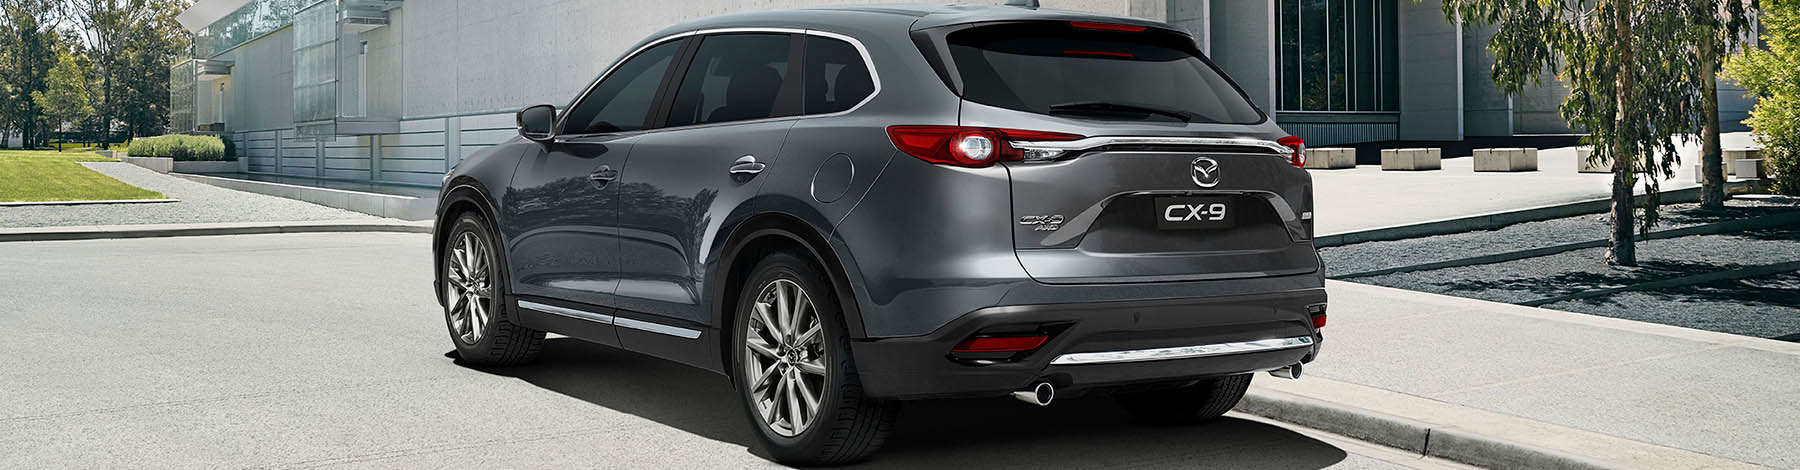 Macarthur Mazda CX-9 Machine Grey Metallic